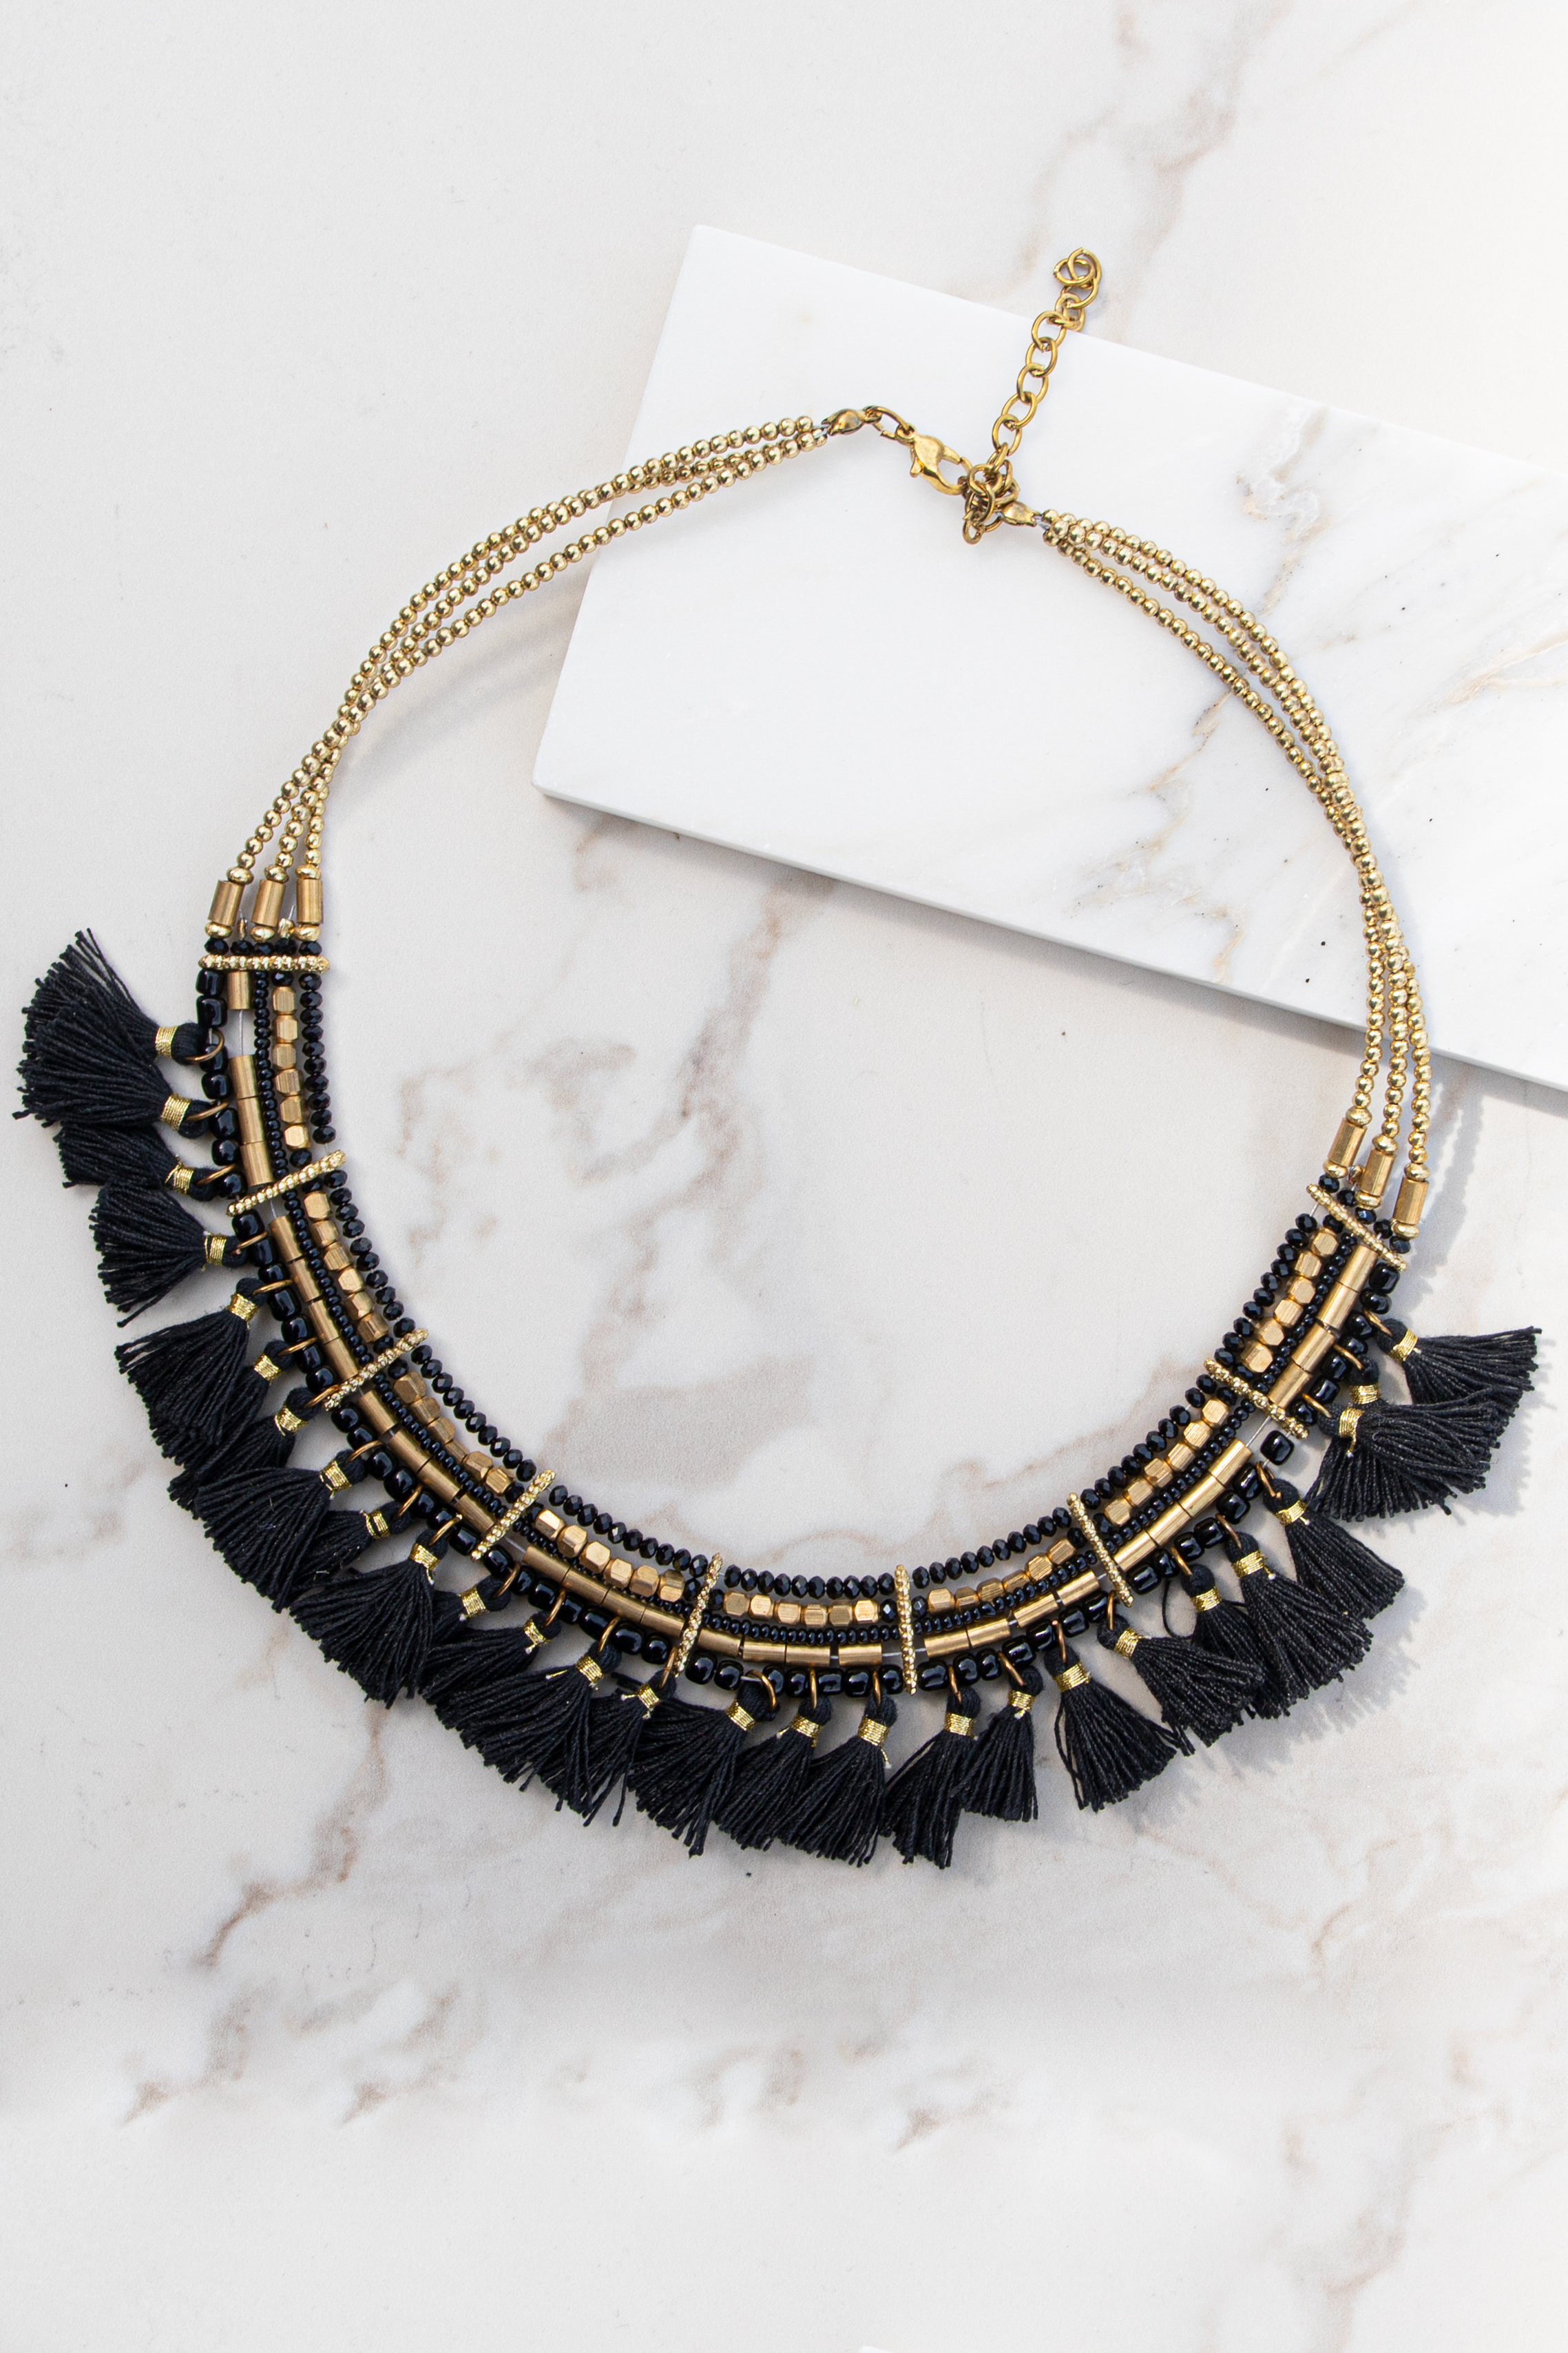 Gold and Black Beaded Choker Necklace with Tassel Details